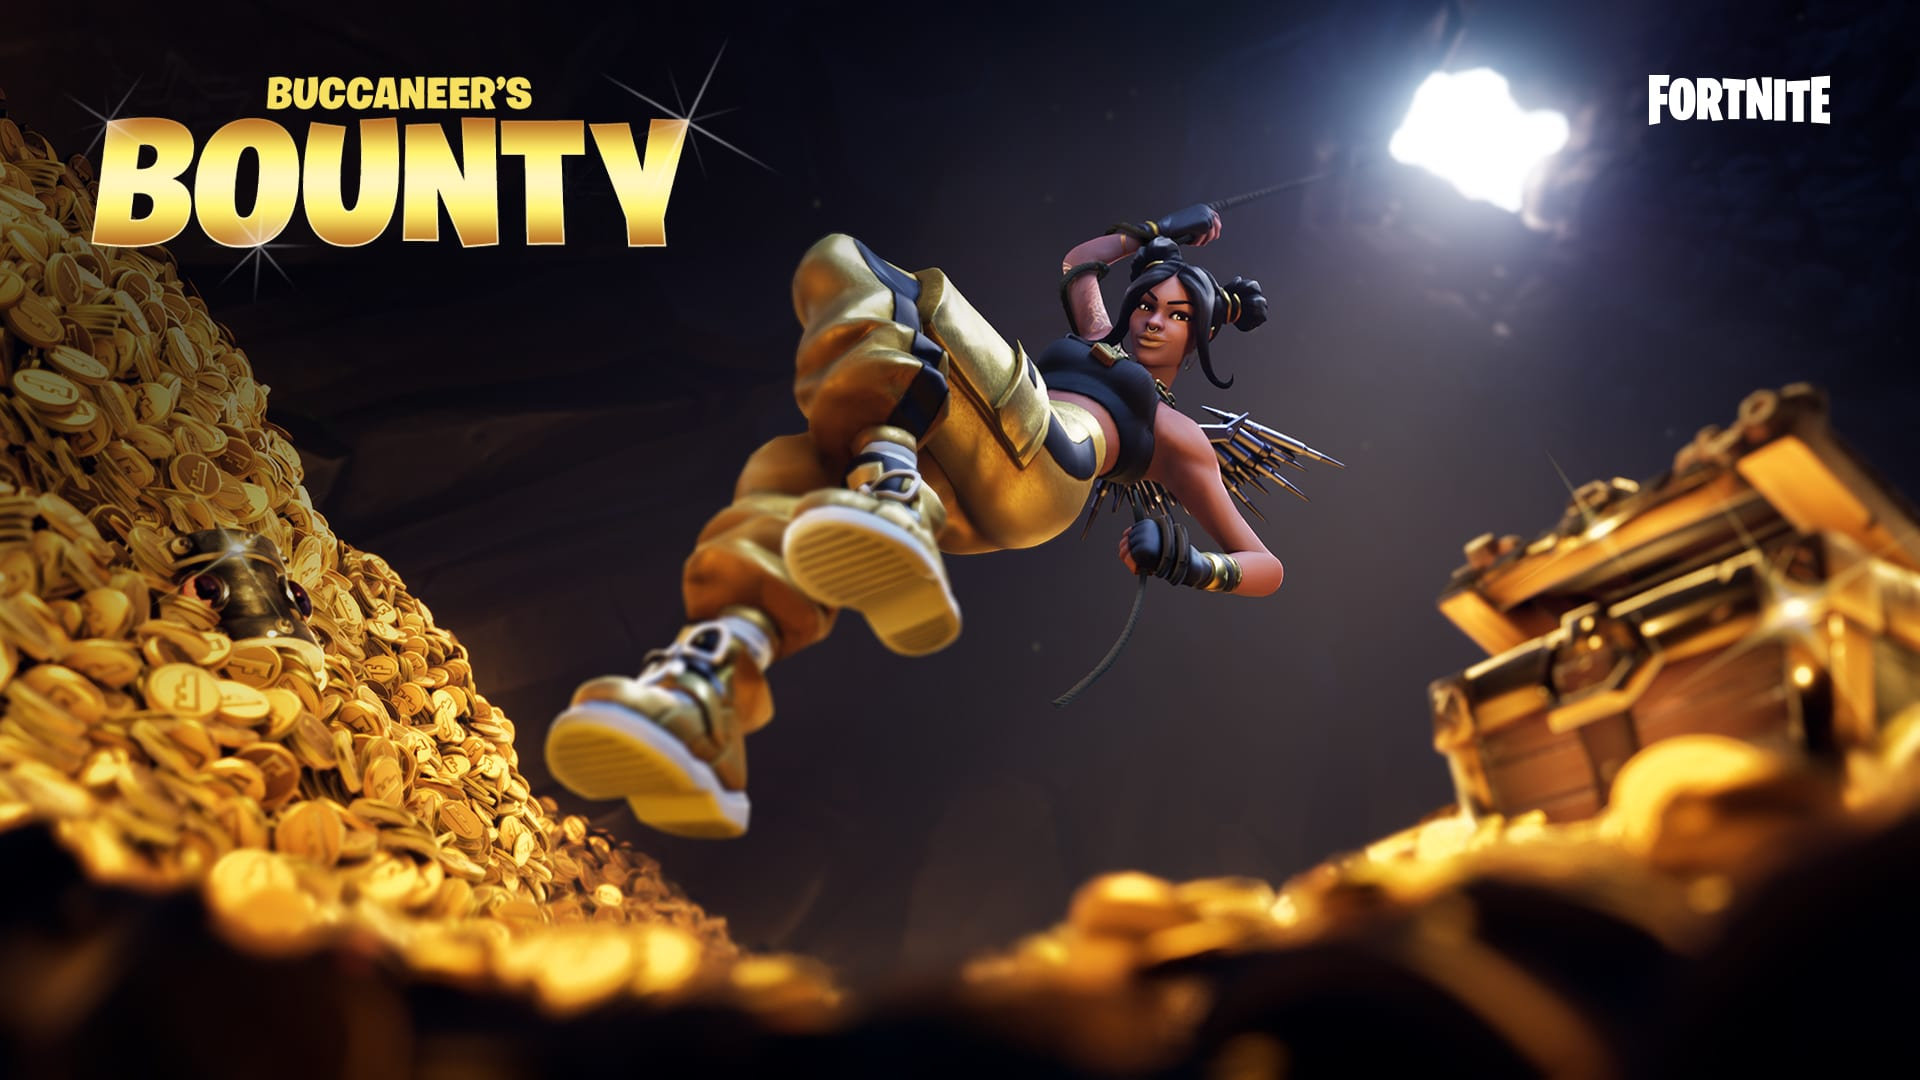 Fortnite Buccaneers Bounty: New Event Added in Fortnite Patch 8.30